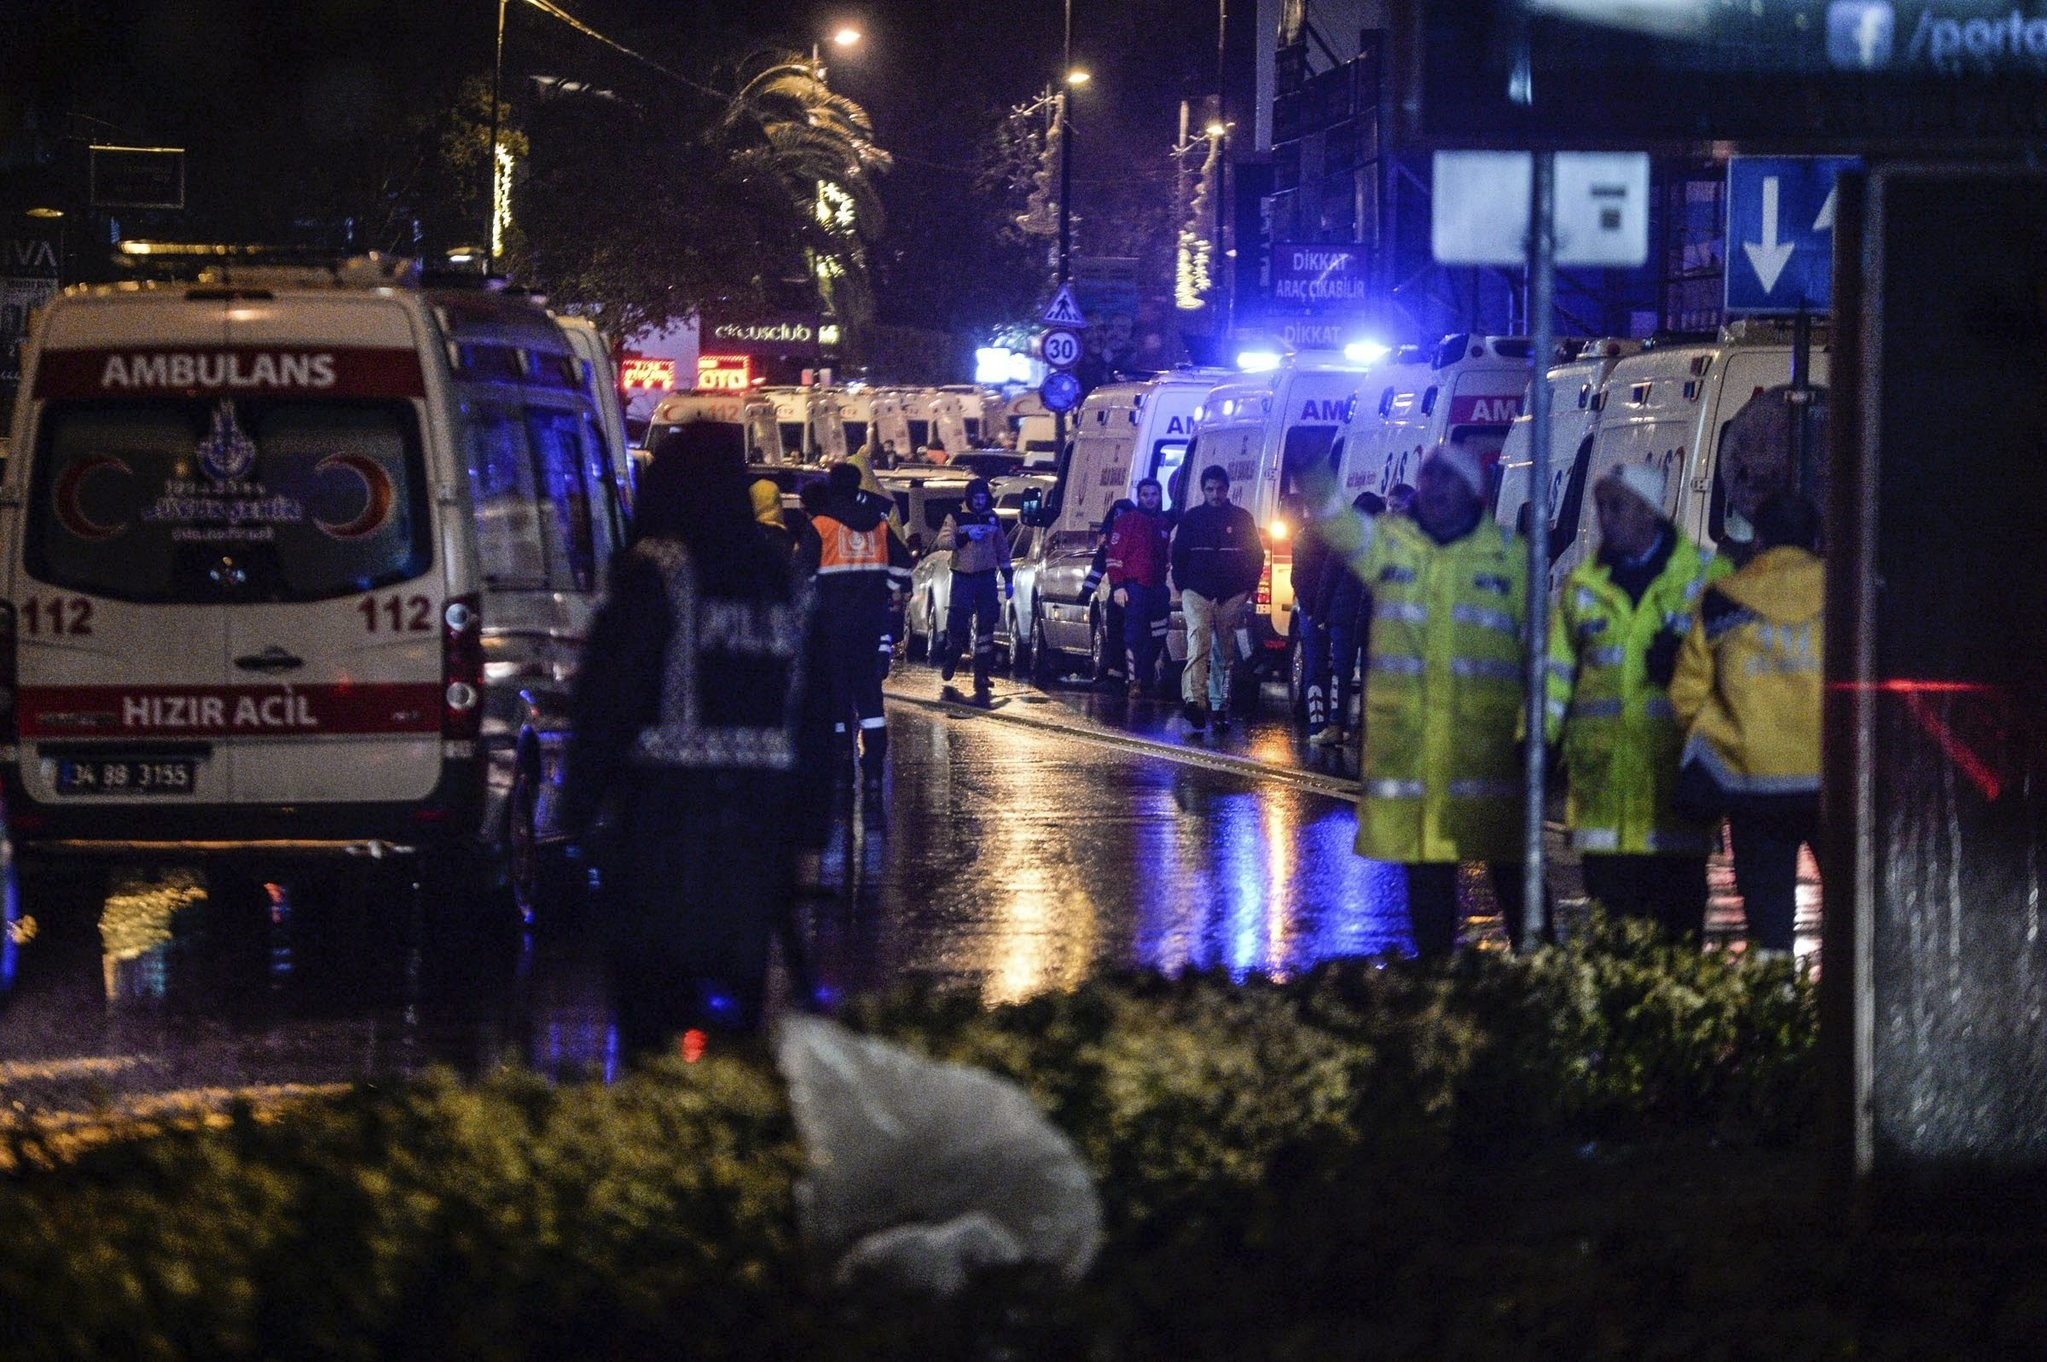 Turkish police officers and medics stand at the site of an armed attack January 1, 2017 in Istanbul. (IHA Photo)